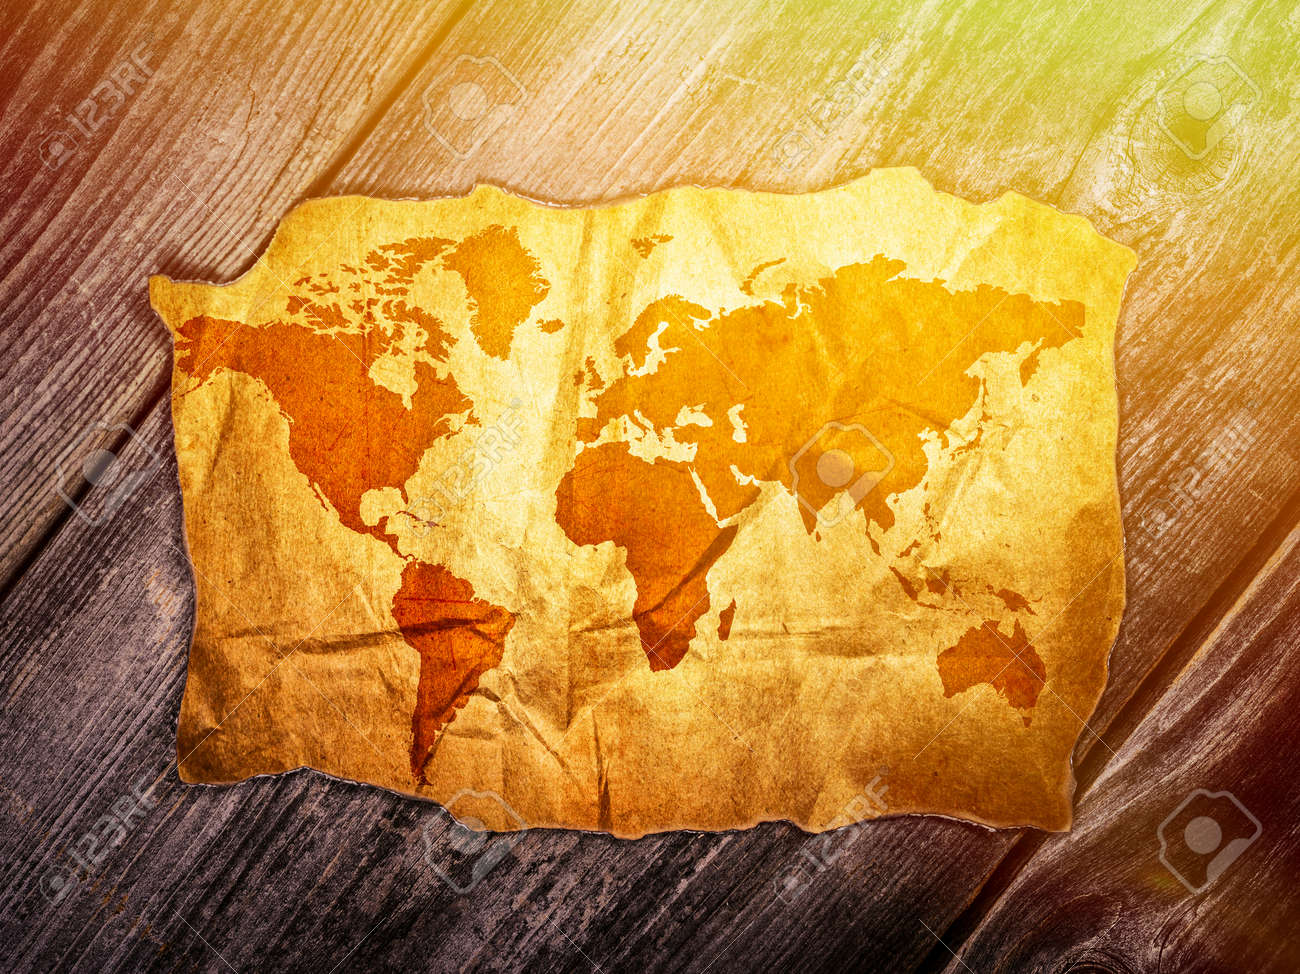 Old world map over wooden background stock photo picture and old world map over wooden background stock photo 40201063 gumiabroncs Images